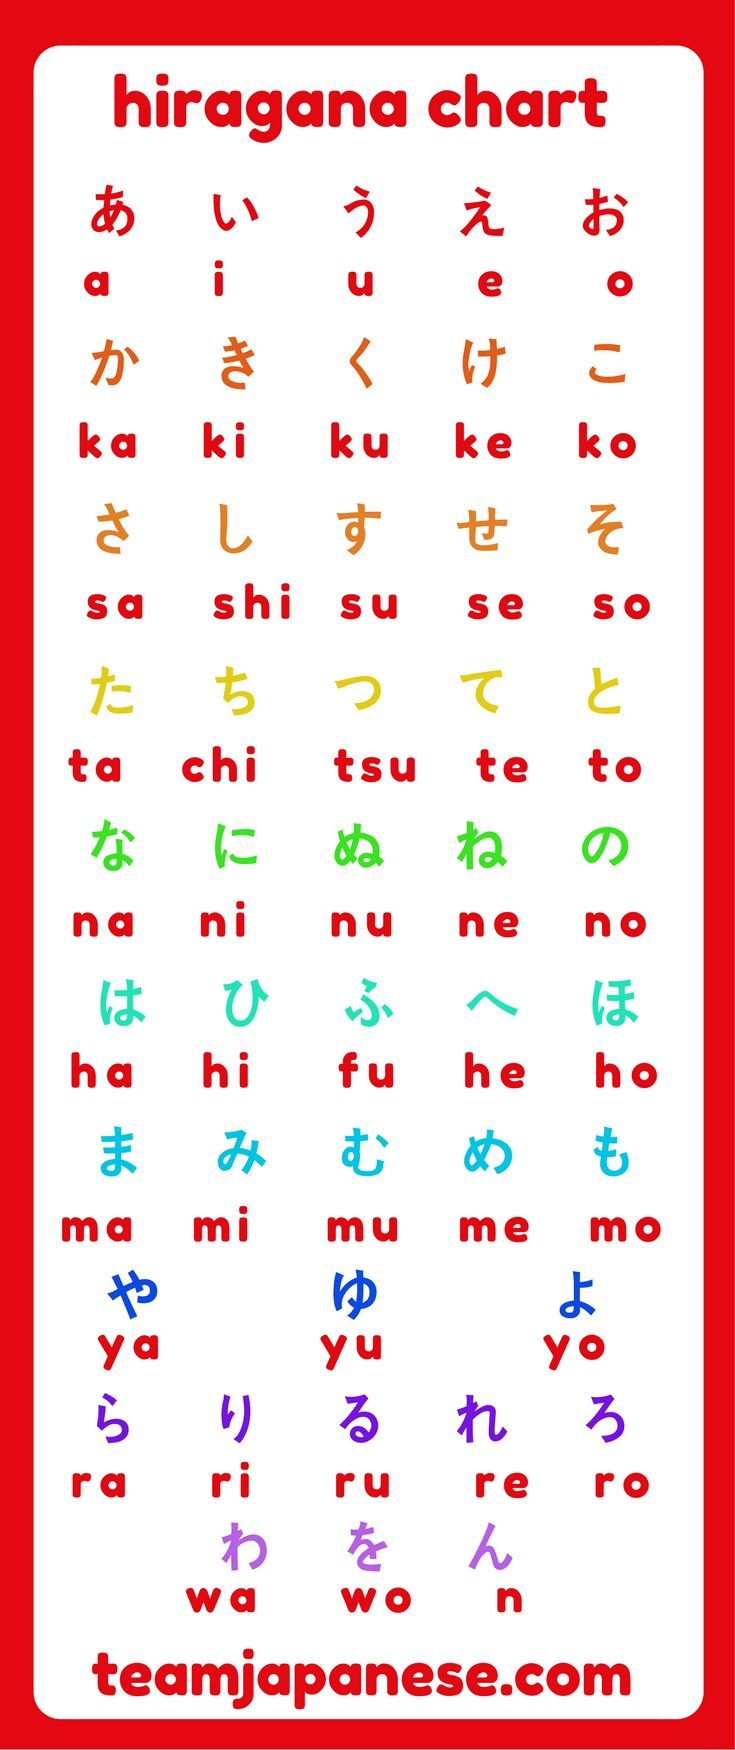 How to learn hiragana japanese language learning